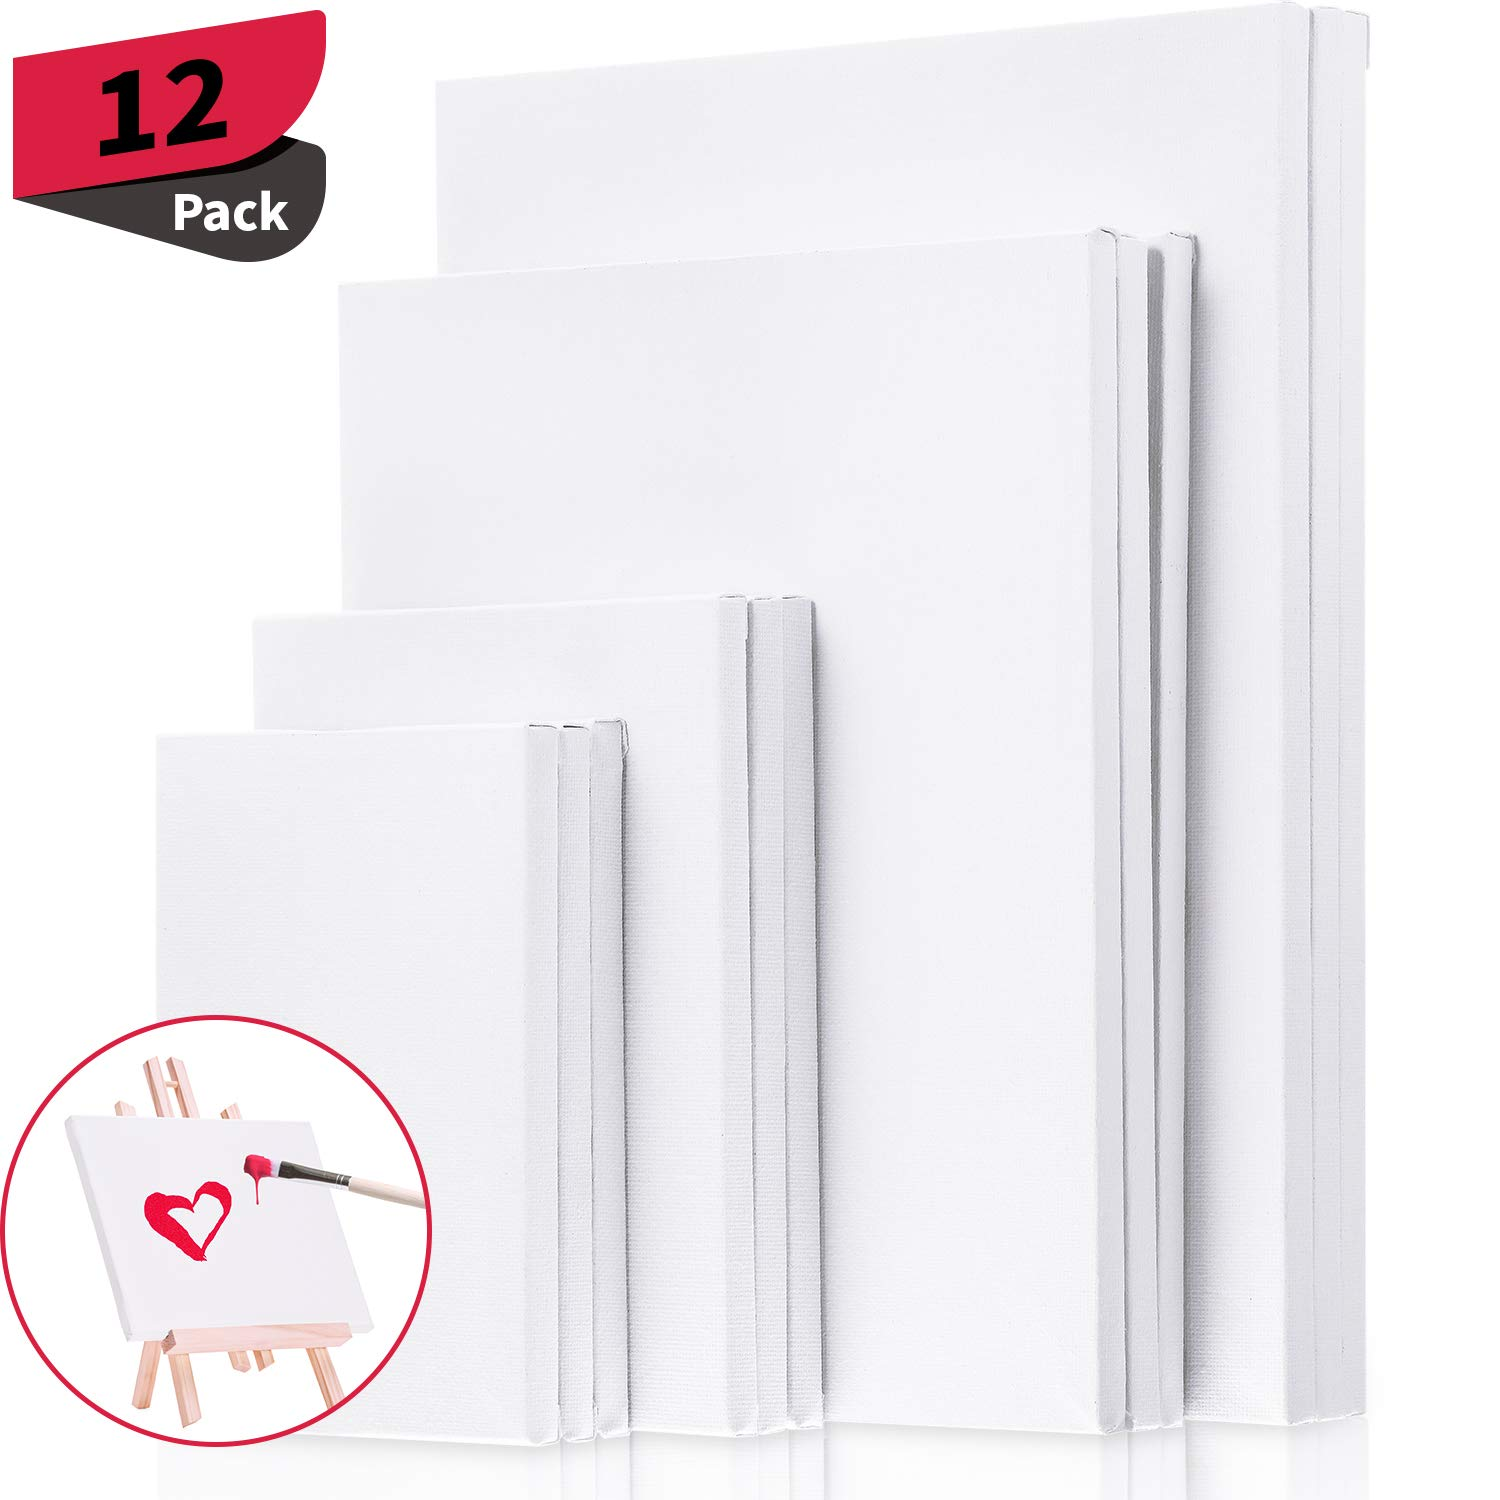 12 Pieces Assorted Size Mini Art Canvas Stretched for Craft Painting Drawing (4 x 6 Inches/ 5 x 7 Inches/ 8 x 10 Inches/ 9 x 12)